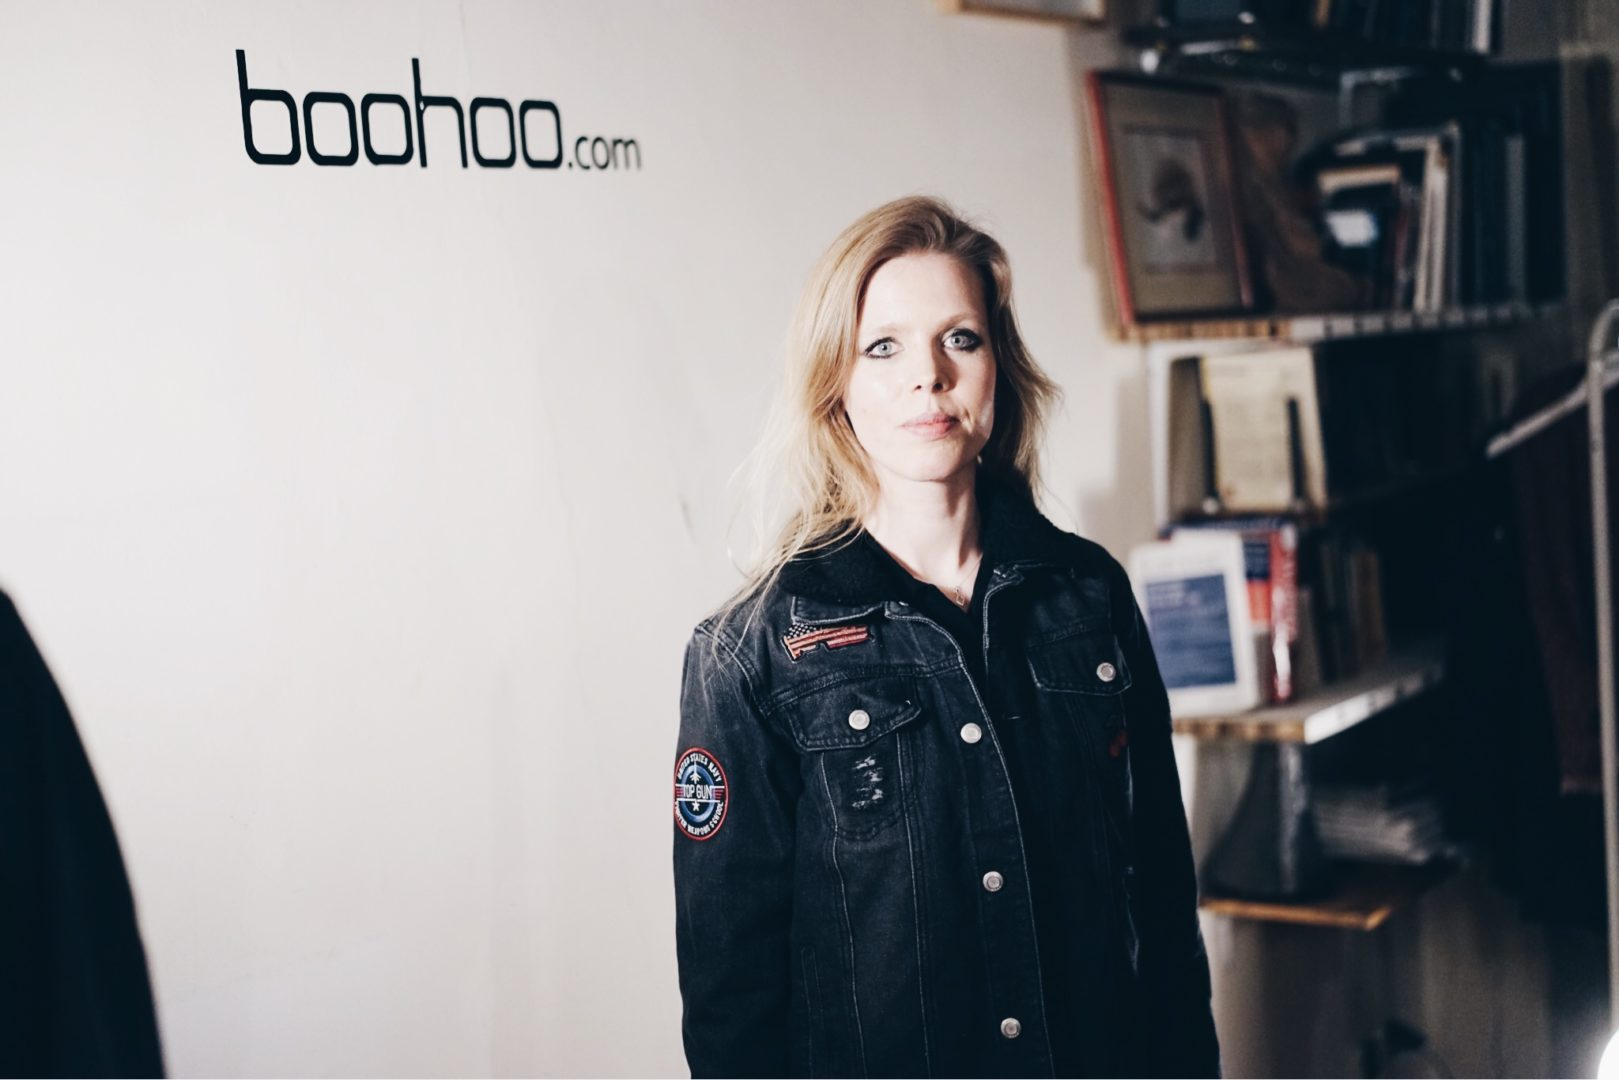 bohoo denim workshop